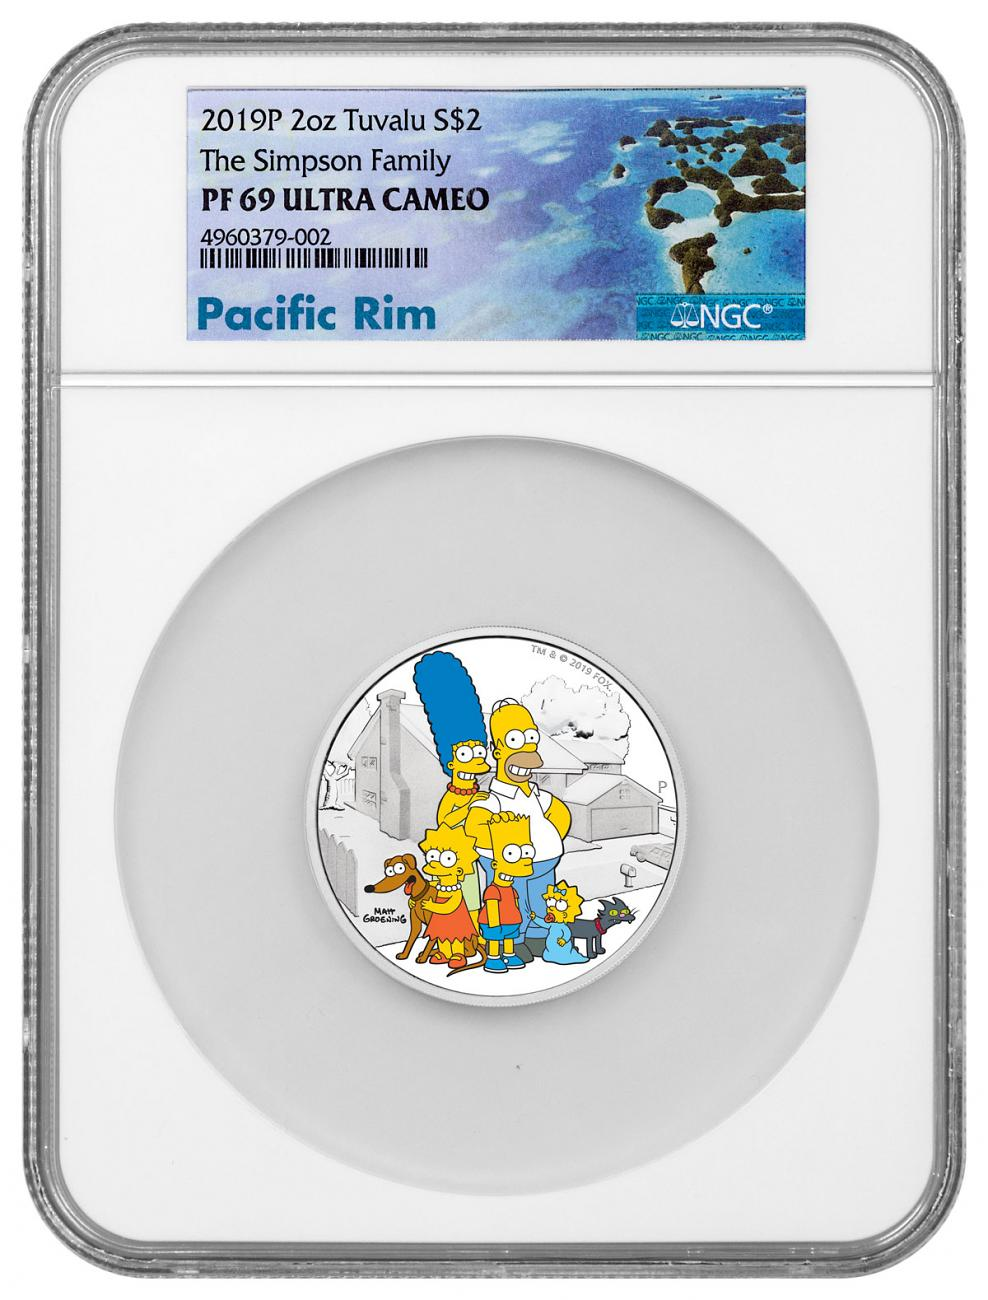 2019 Tuvalu The Simpsons - Family 2 oz Silver Colorized Proof $2 Coin NGC PF69 UC Exclusive Pacific Rim Label